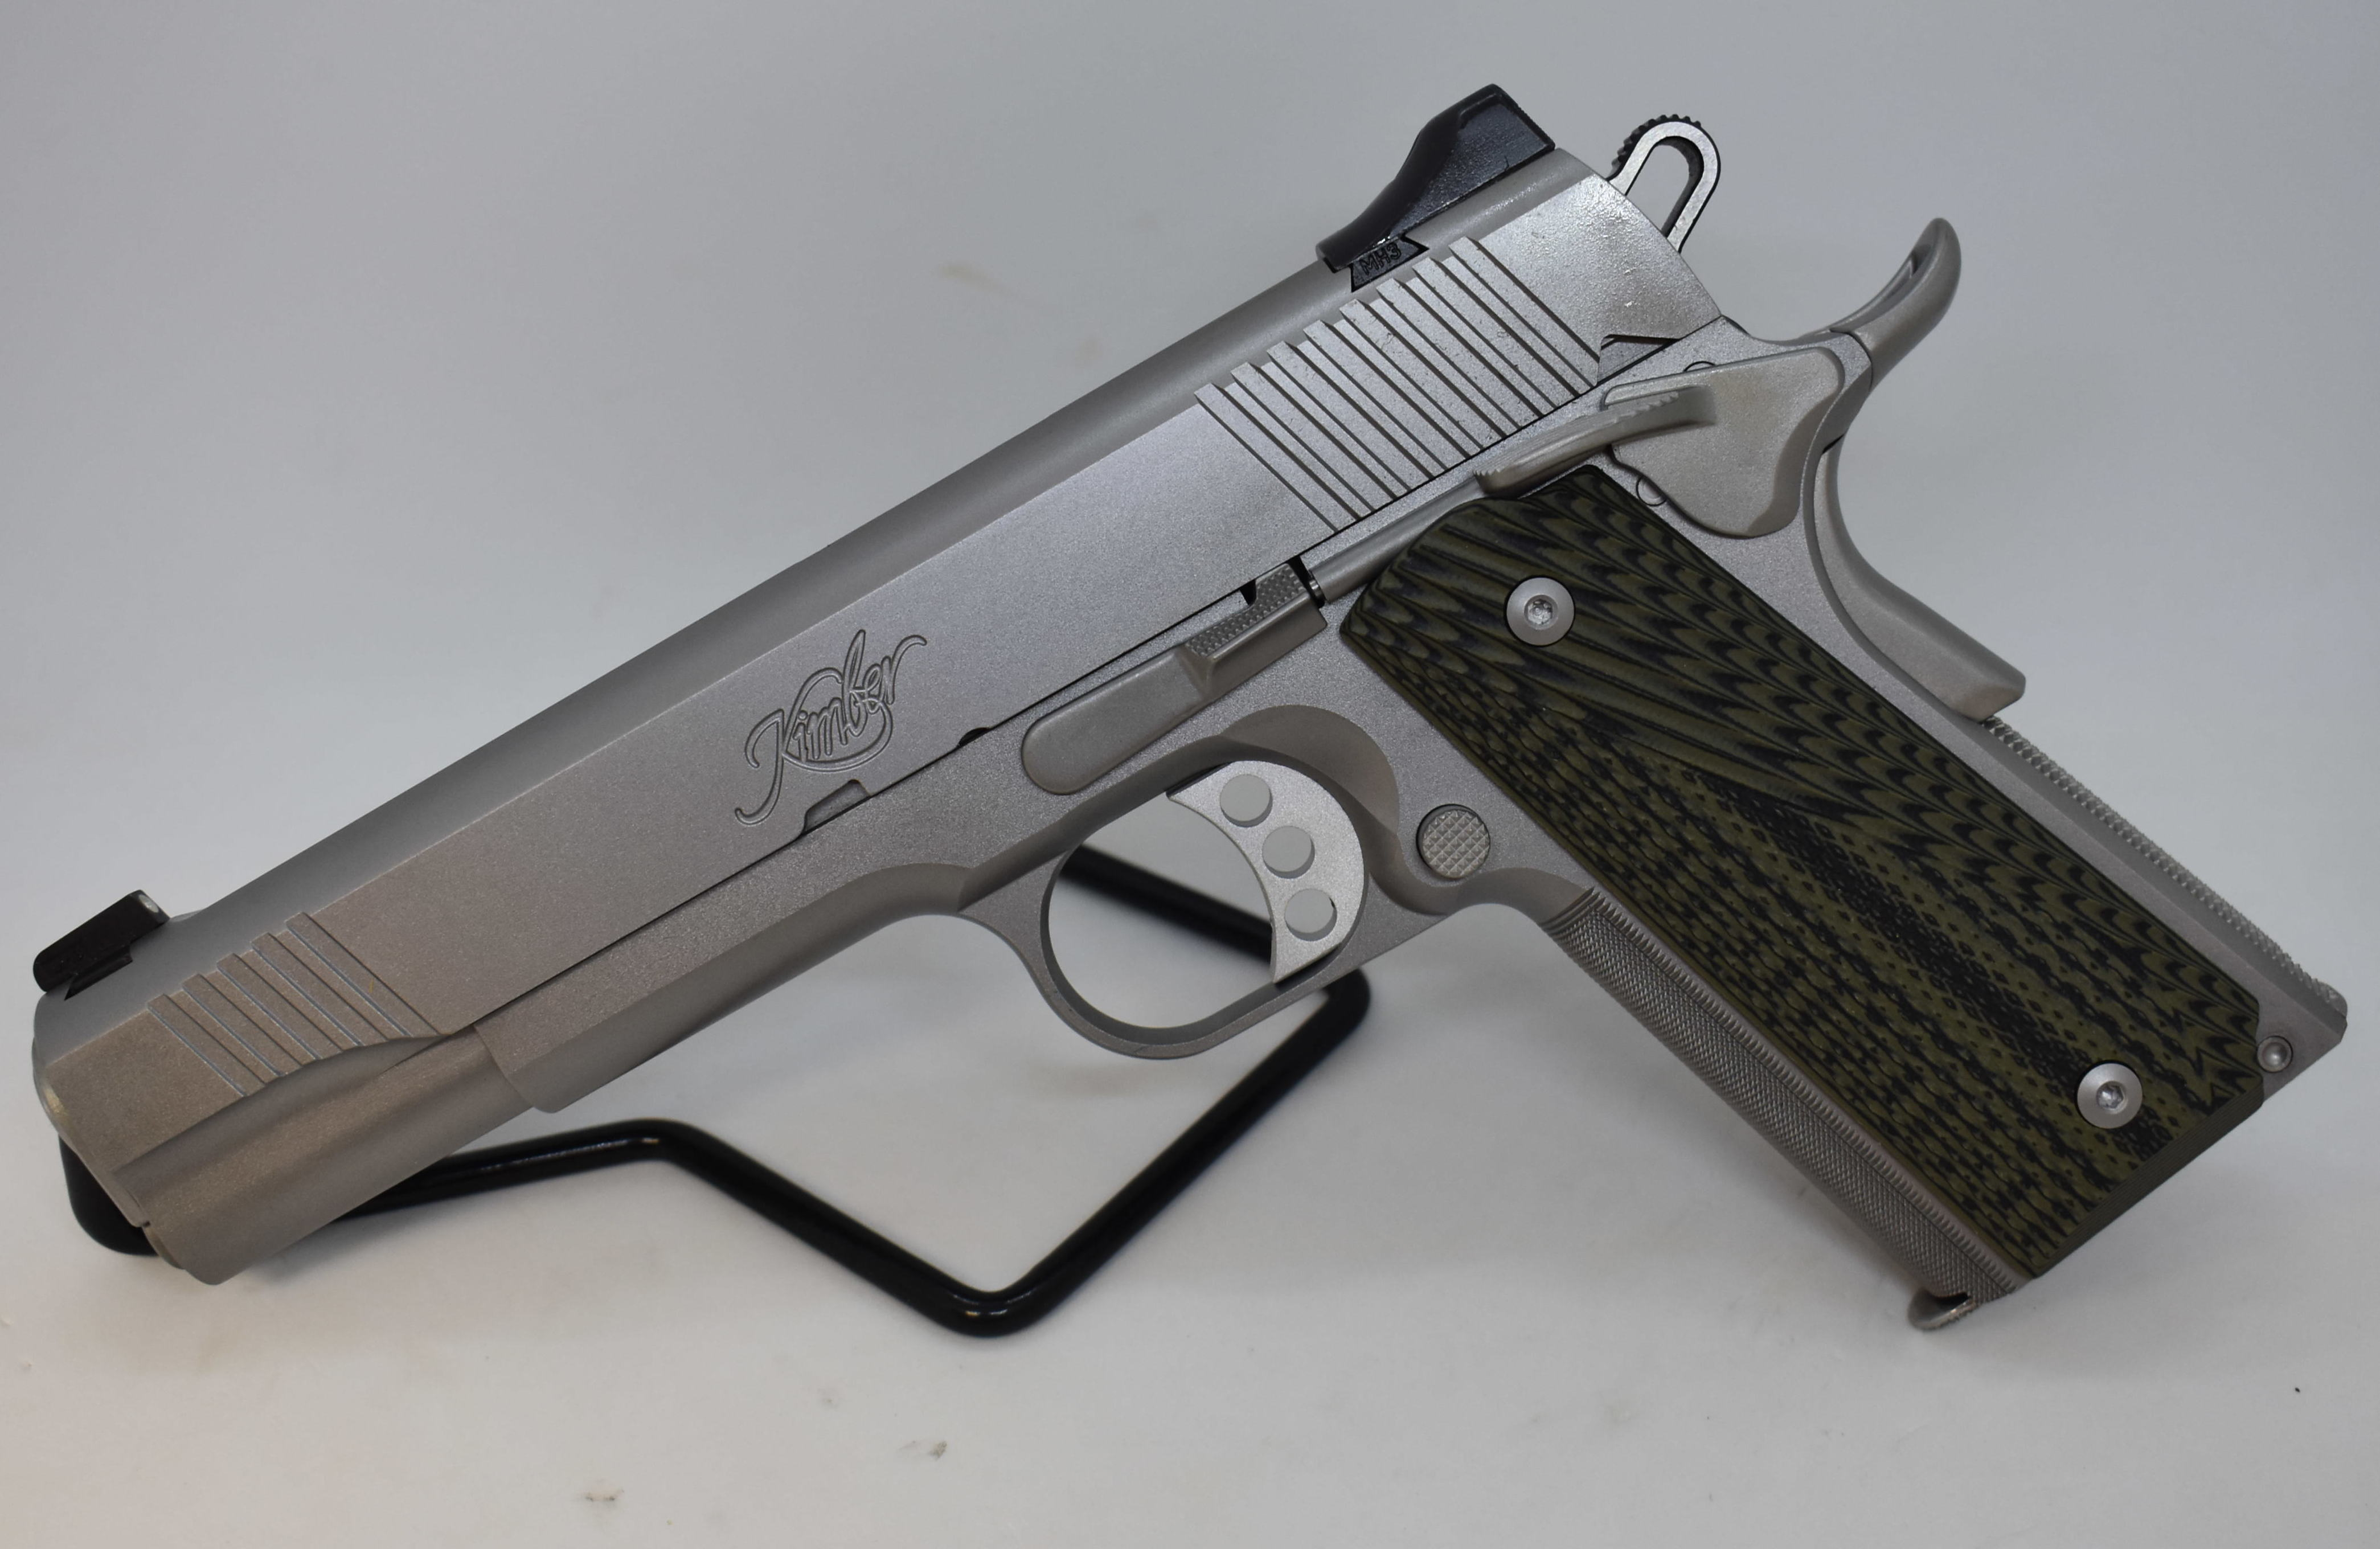 KIMBER - TLE II - PISTOL FIREARM SEMI AUTOMATIC